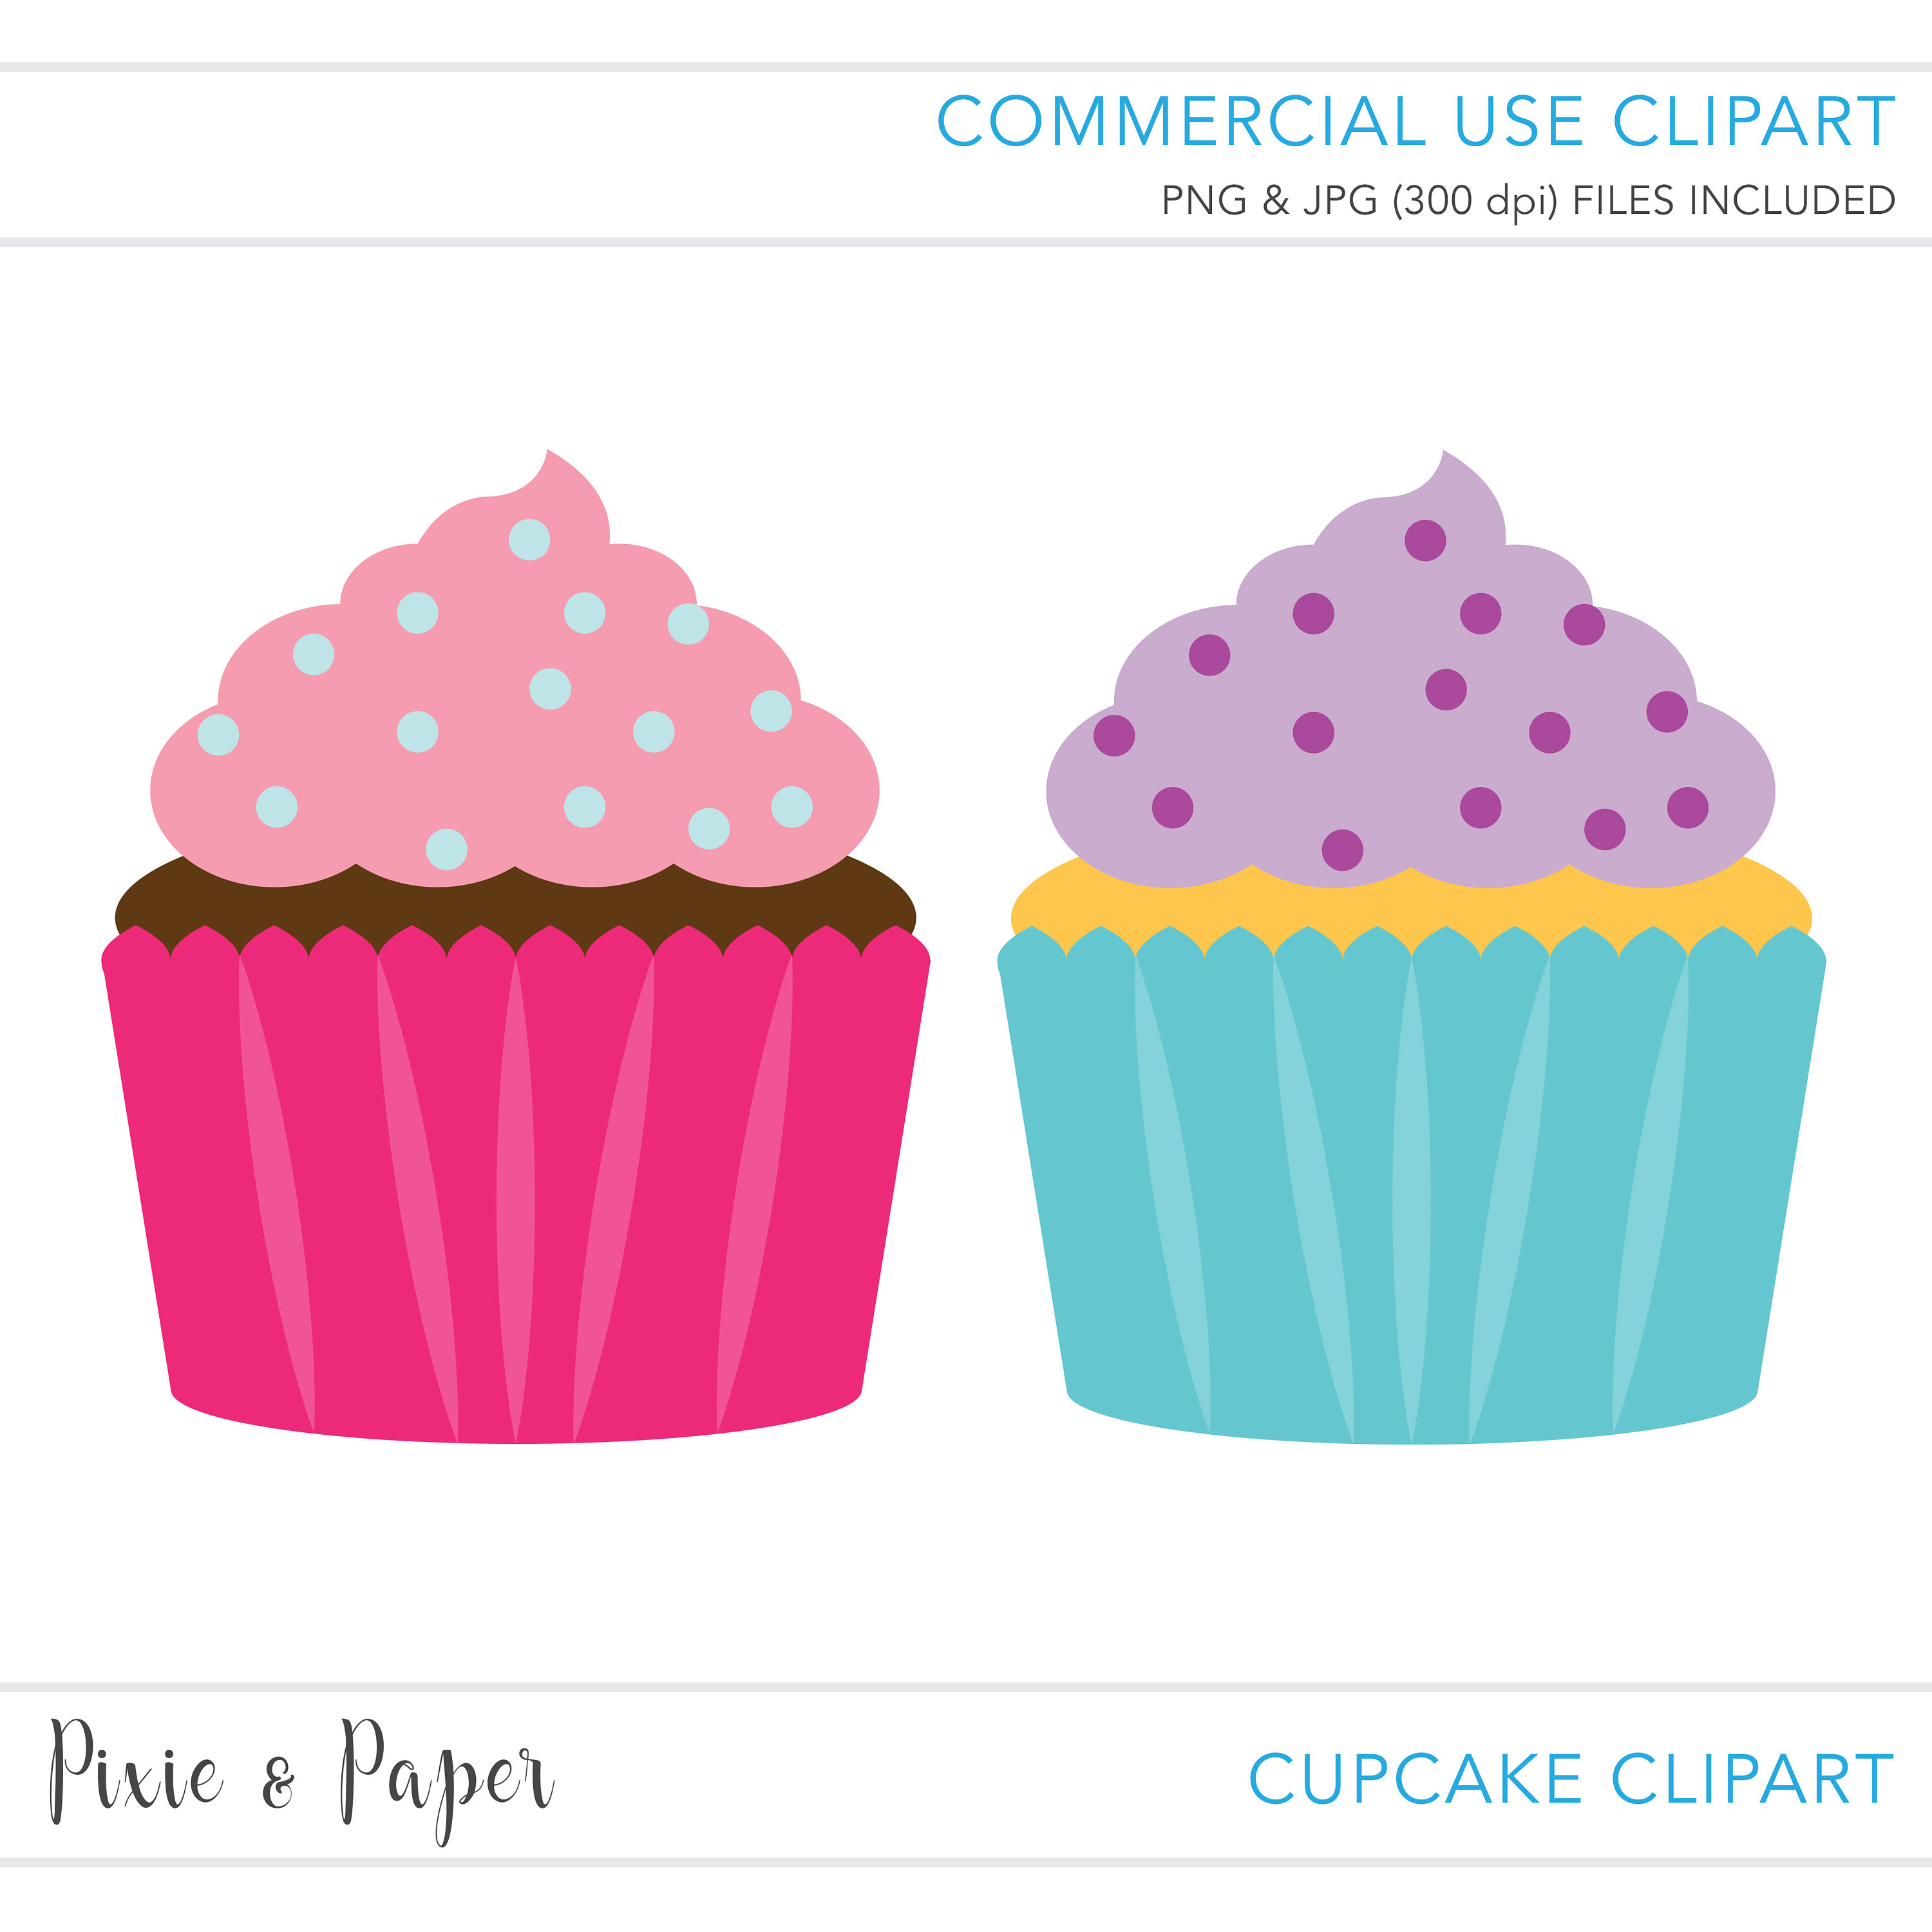 3000x3000 Commercial Use Clipart, Commercial Use Clip Art, Cupcake Clipart